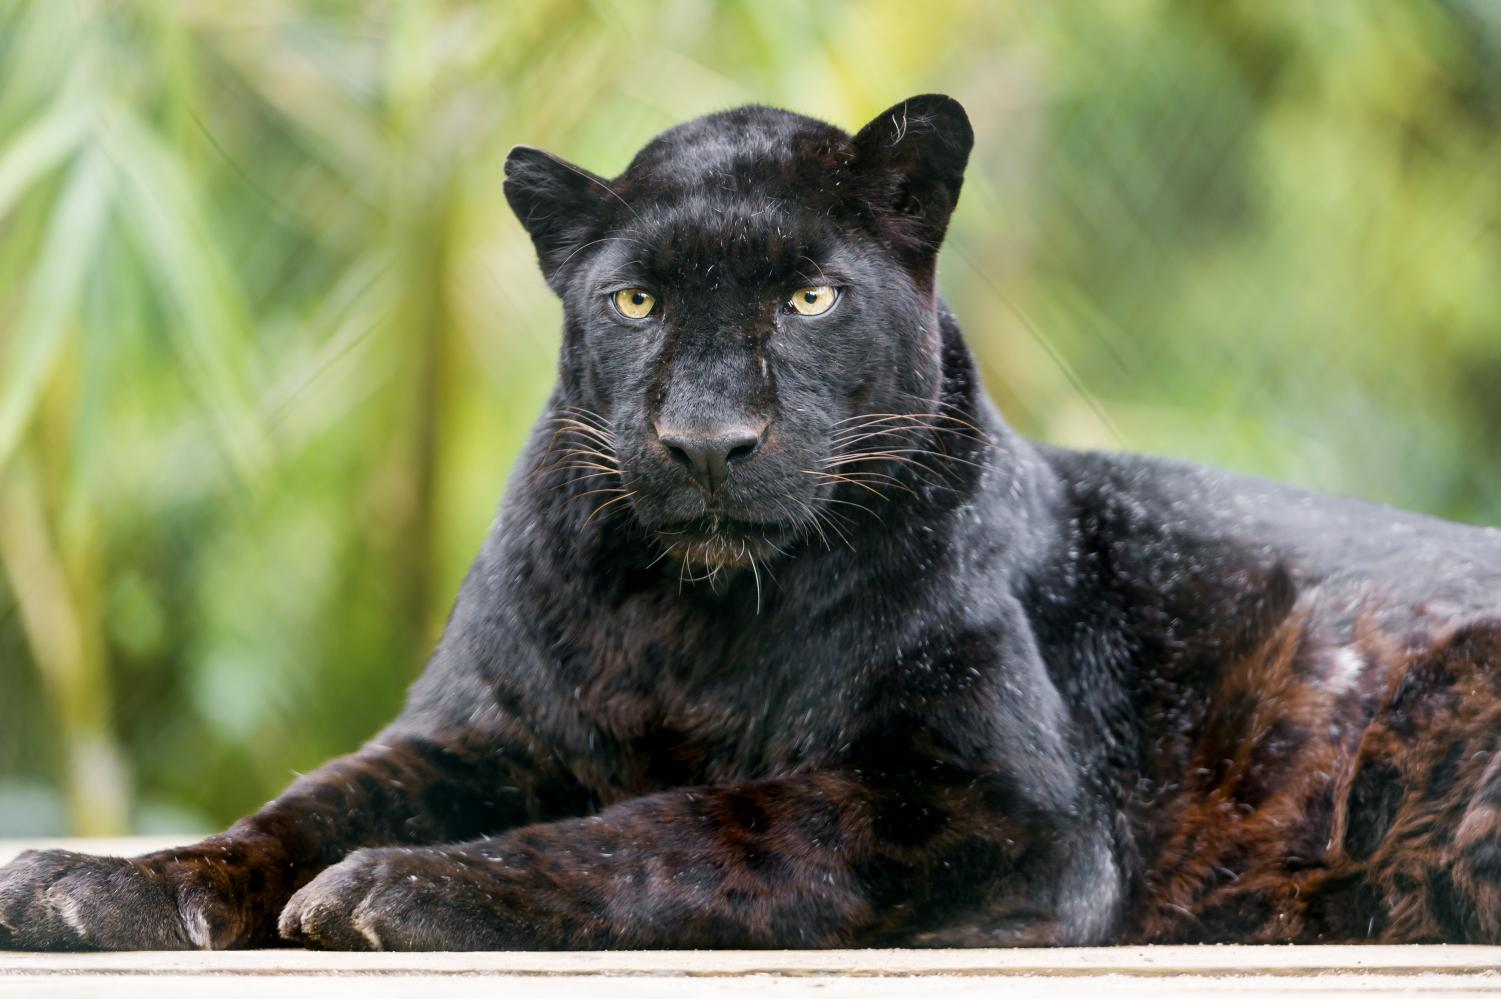 A male black leopard relaxes on a wooden platform. Trophy hunting has become a global conversation as numbers of endangered species further diminish.